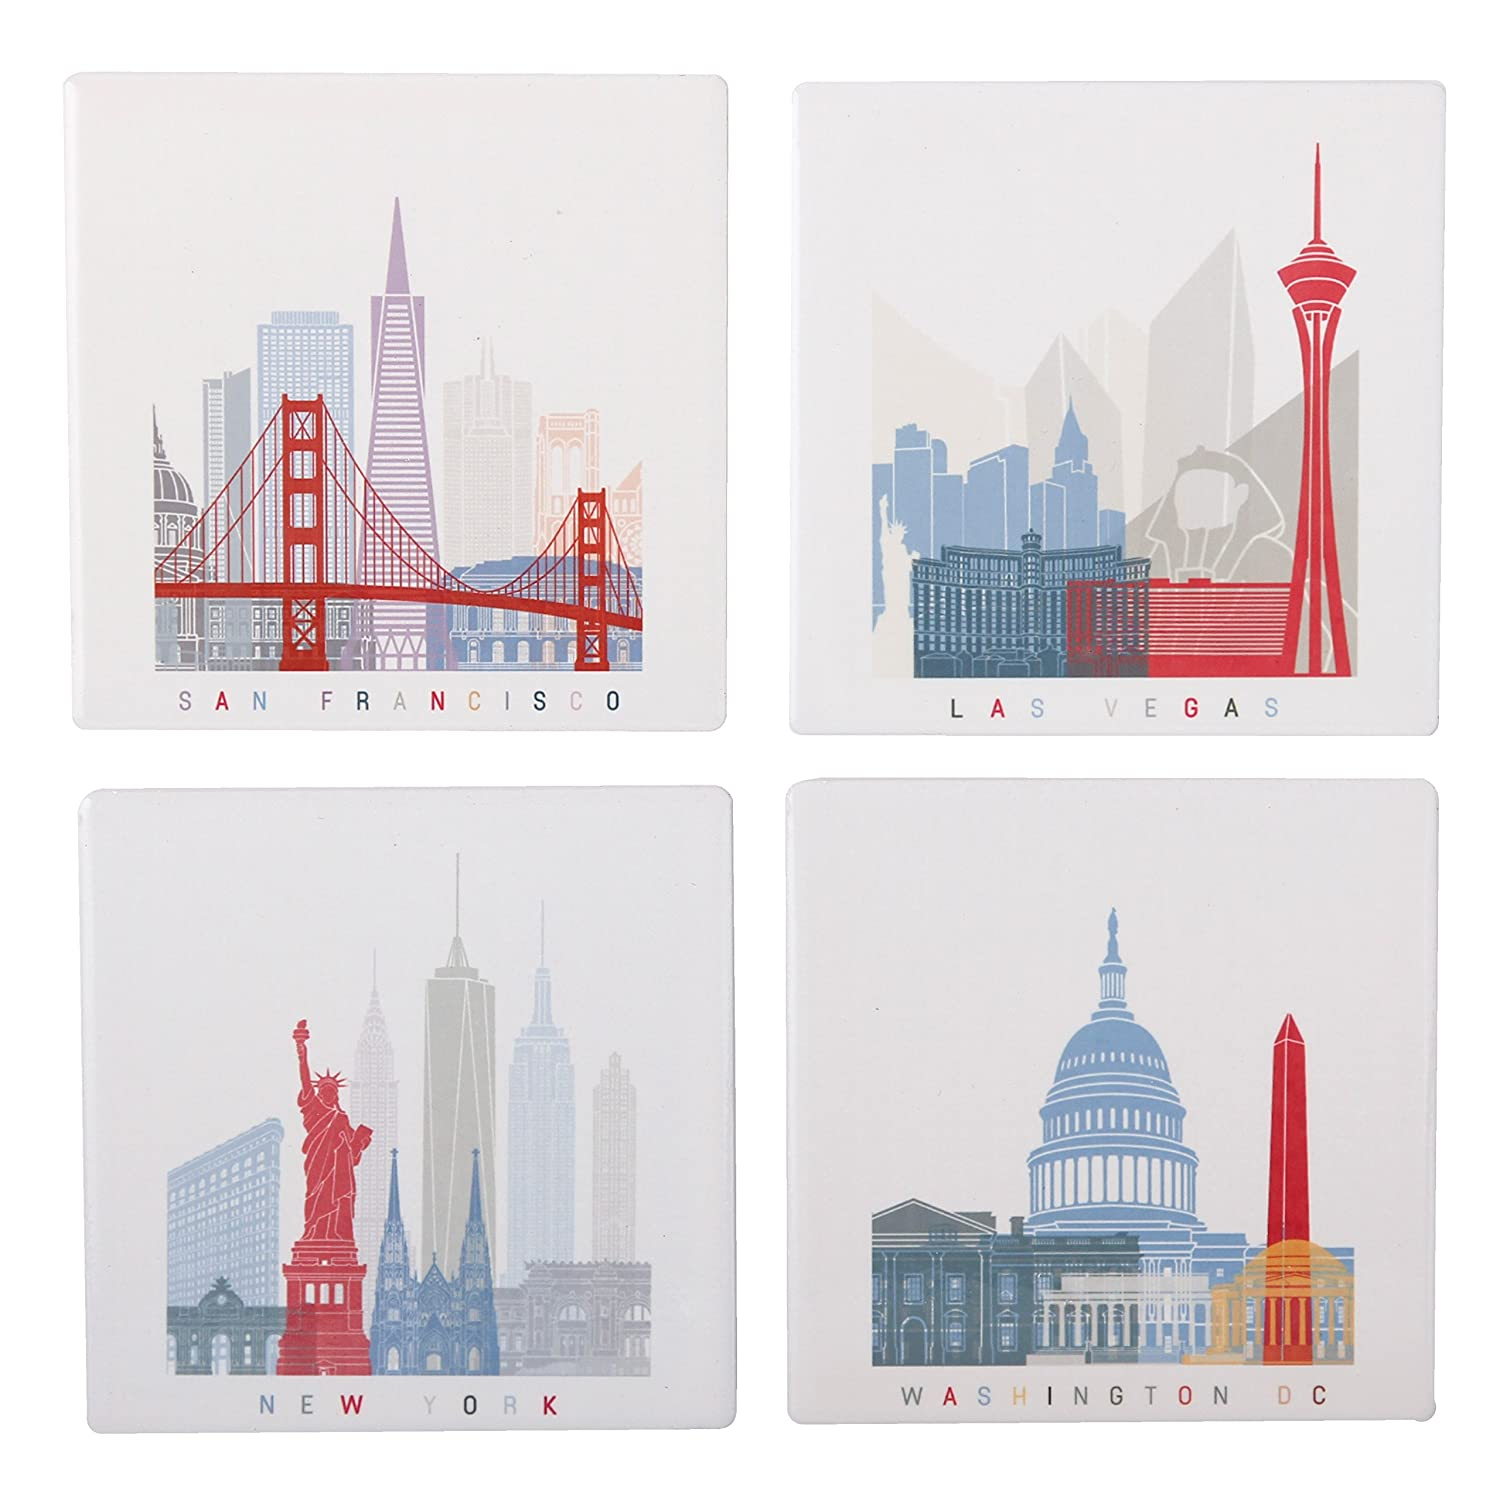 Planet Ethnic World Explorer (USA - Washington DC, New York, Las Vegas, San Francisco) Ceramic Coaster Set (4 coasters, each almost 4 X 4 inches) with matching wooden coaster holder and nice gift box